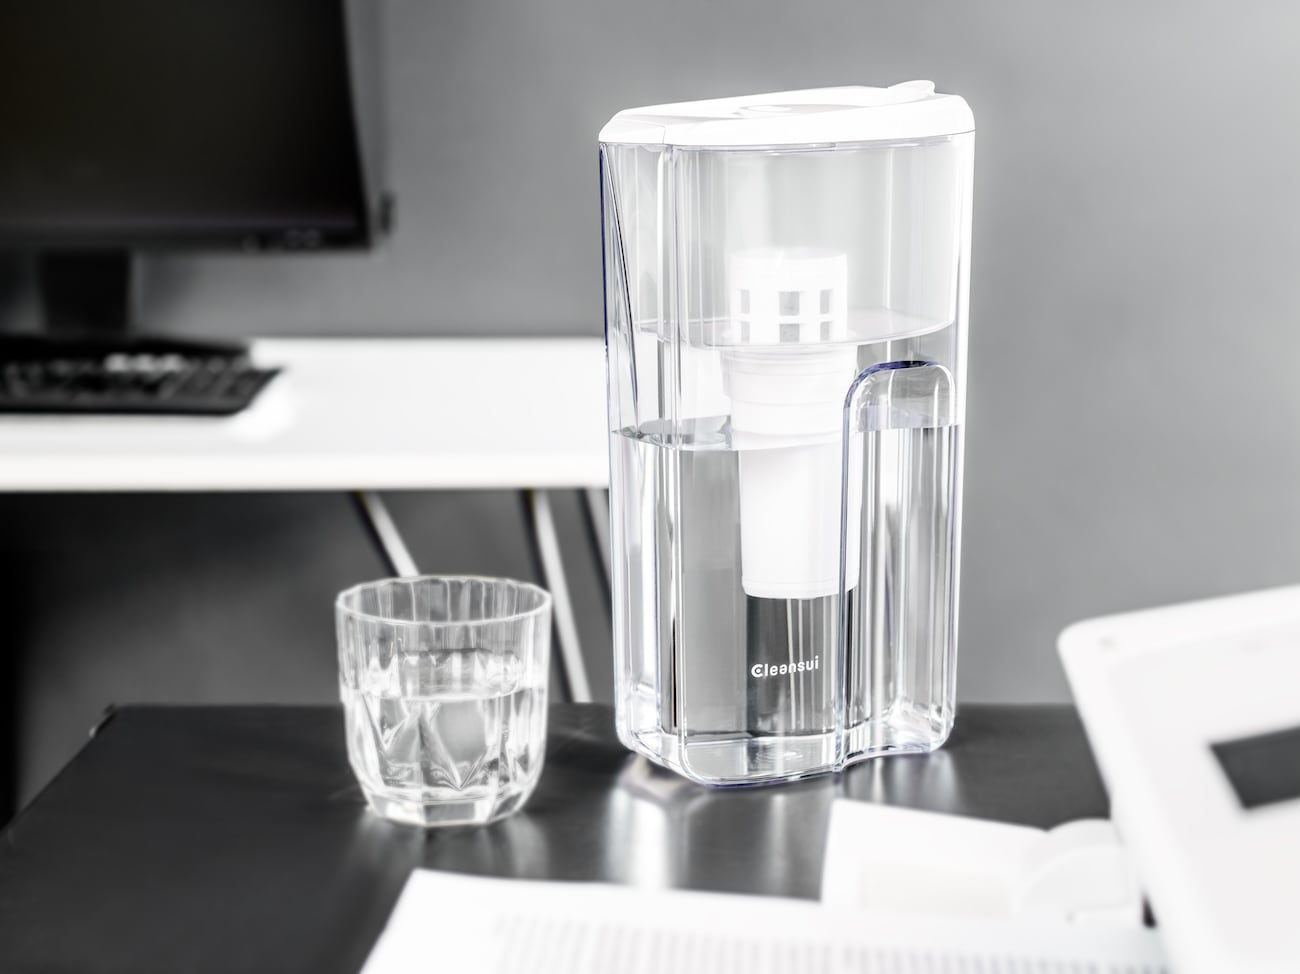 Mitsubishi Cleansui Microfiltration Water Pitcher